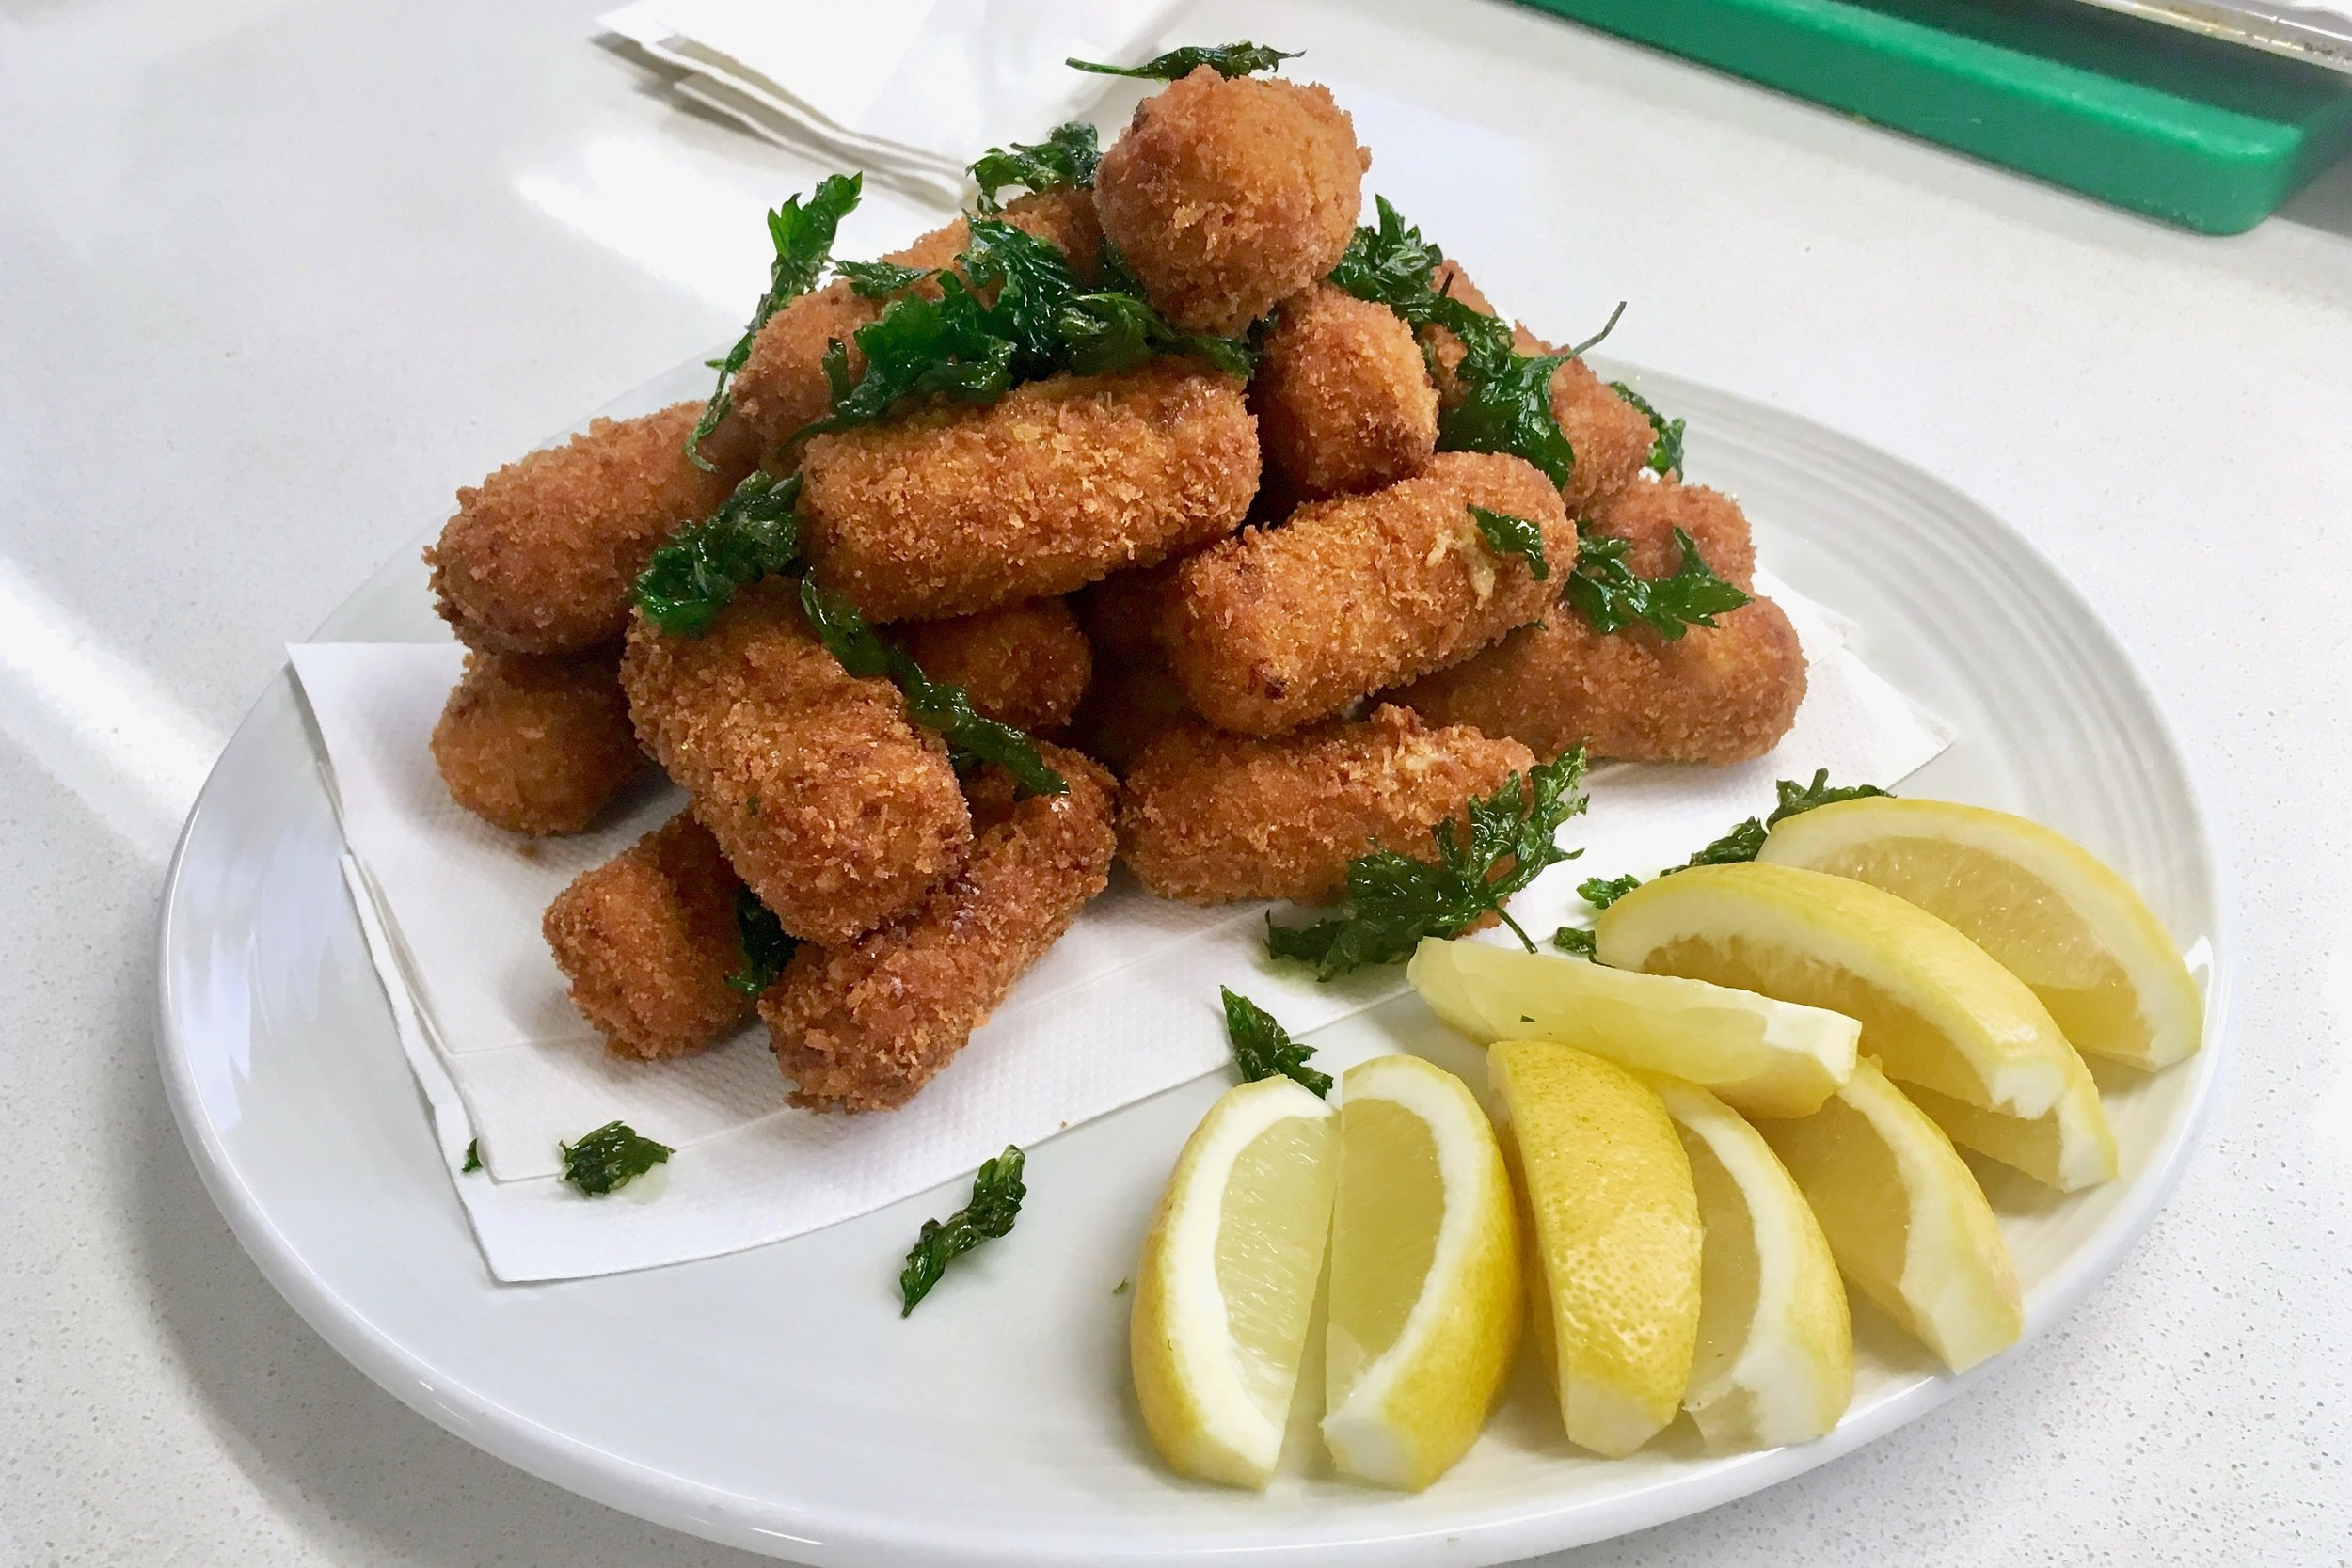 Ostende-style brown shrimp croquettes